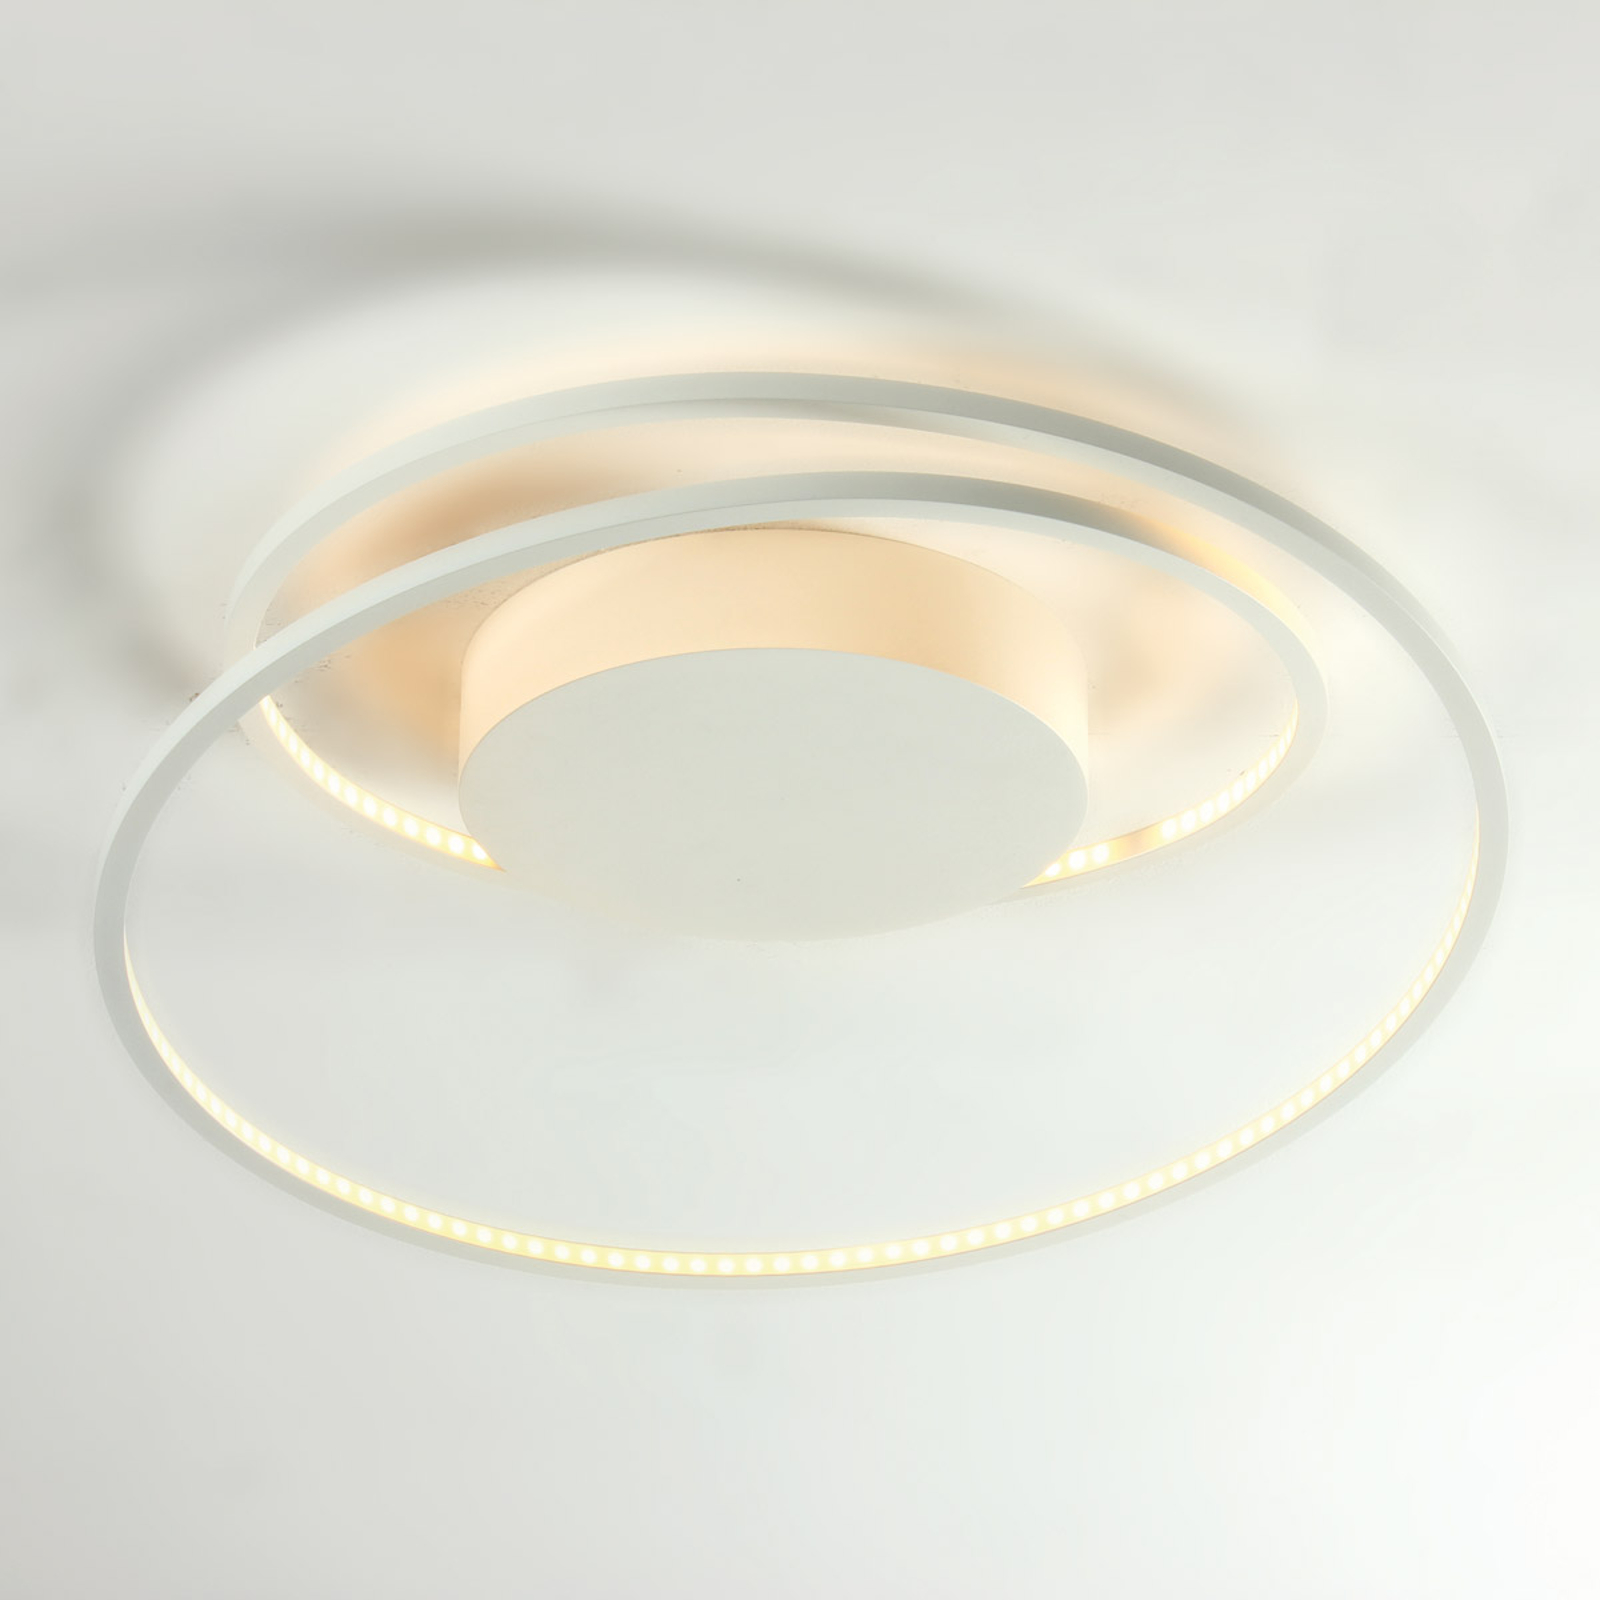 At - een unieke LED-plafondlamp in wit